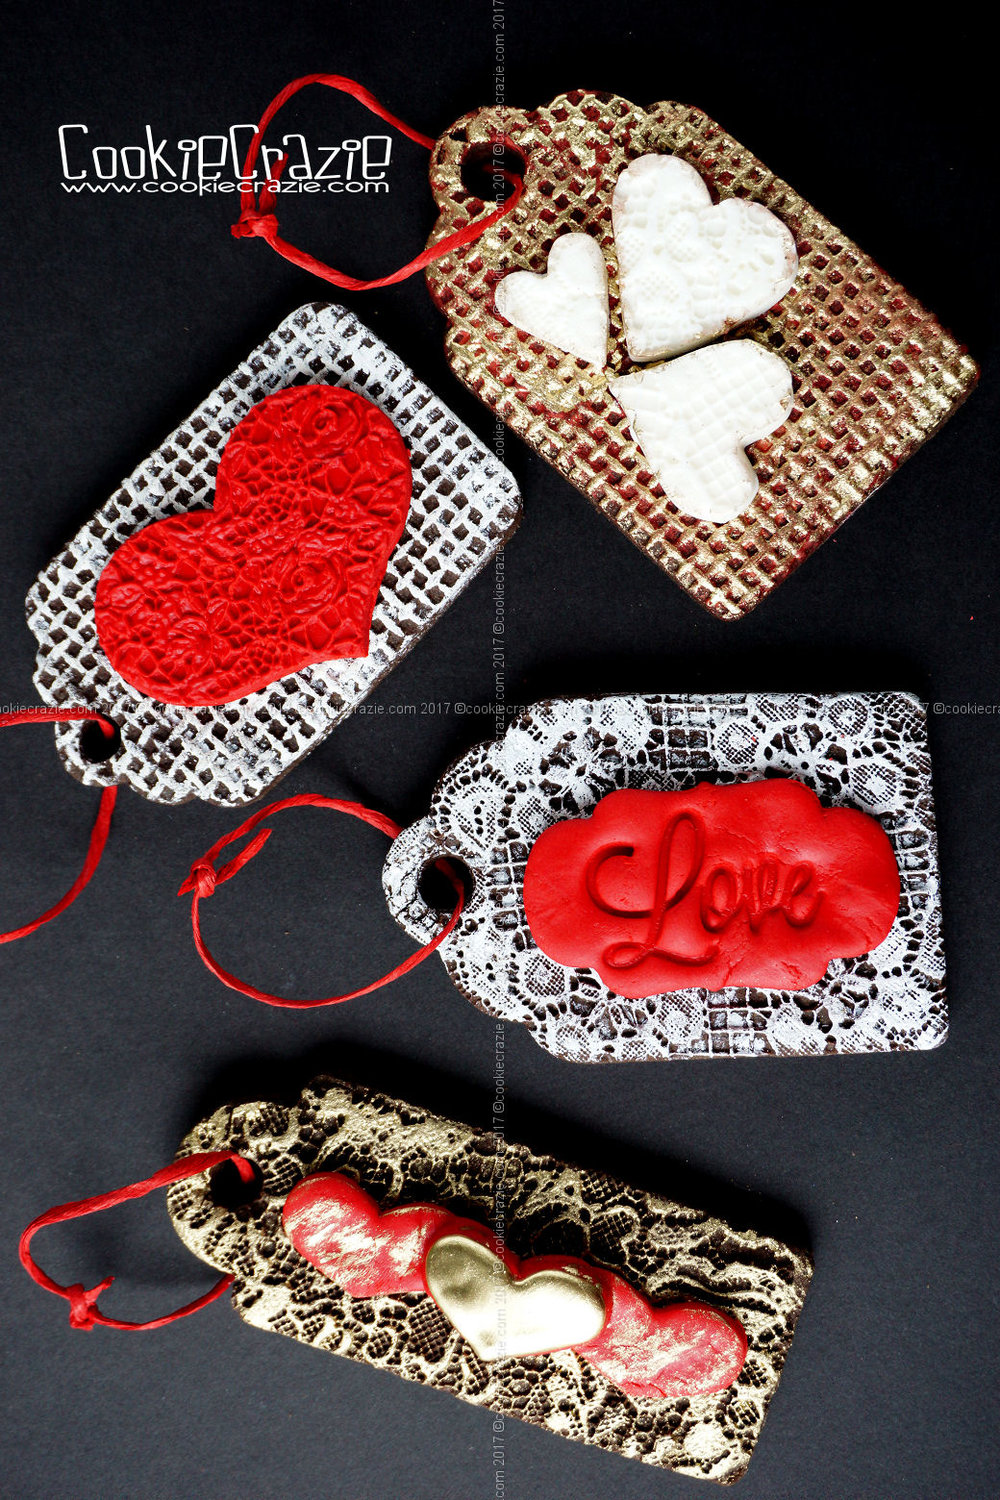 Embossed Valentine Gift Tag Decorated Sugar Cookies YouTube video  HERE